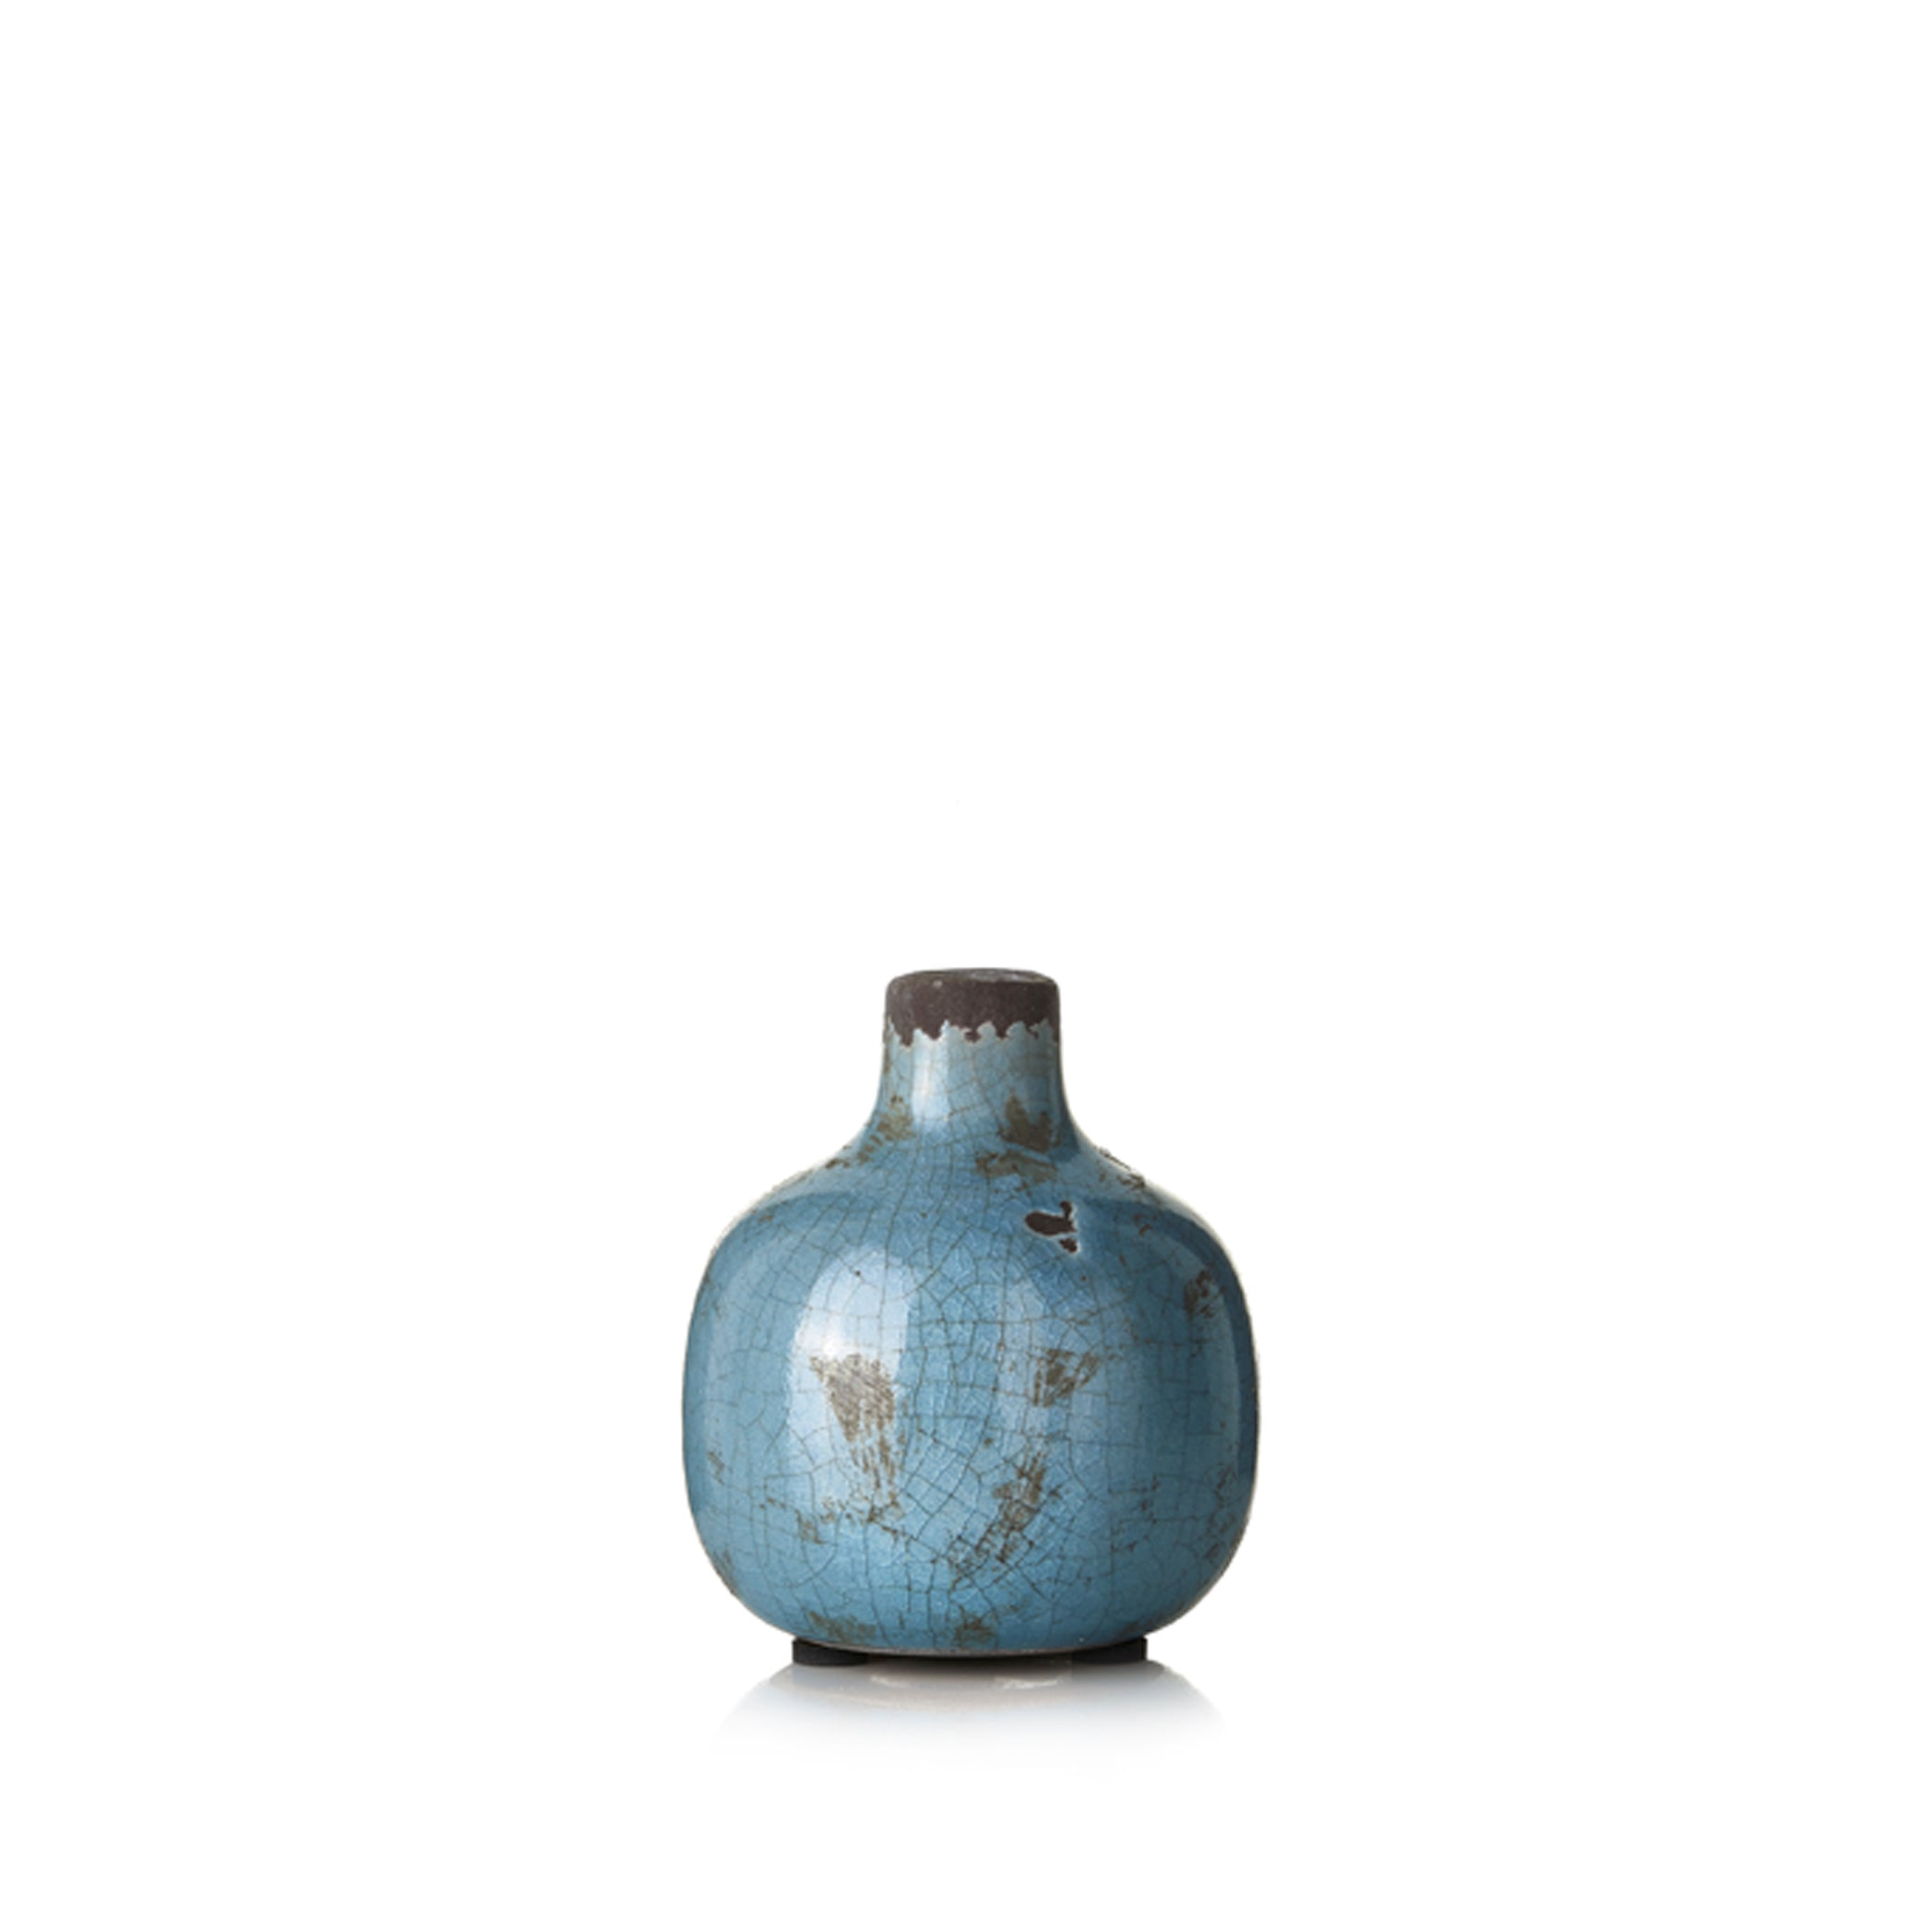 Ceramic Crackled Vase in Grey blue